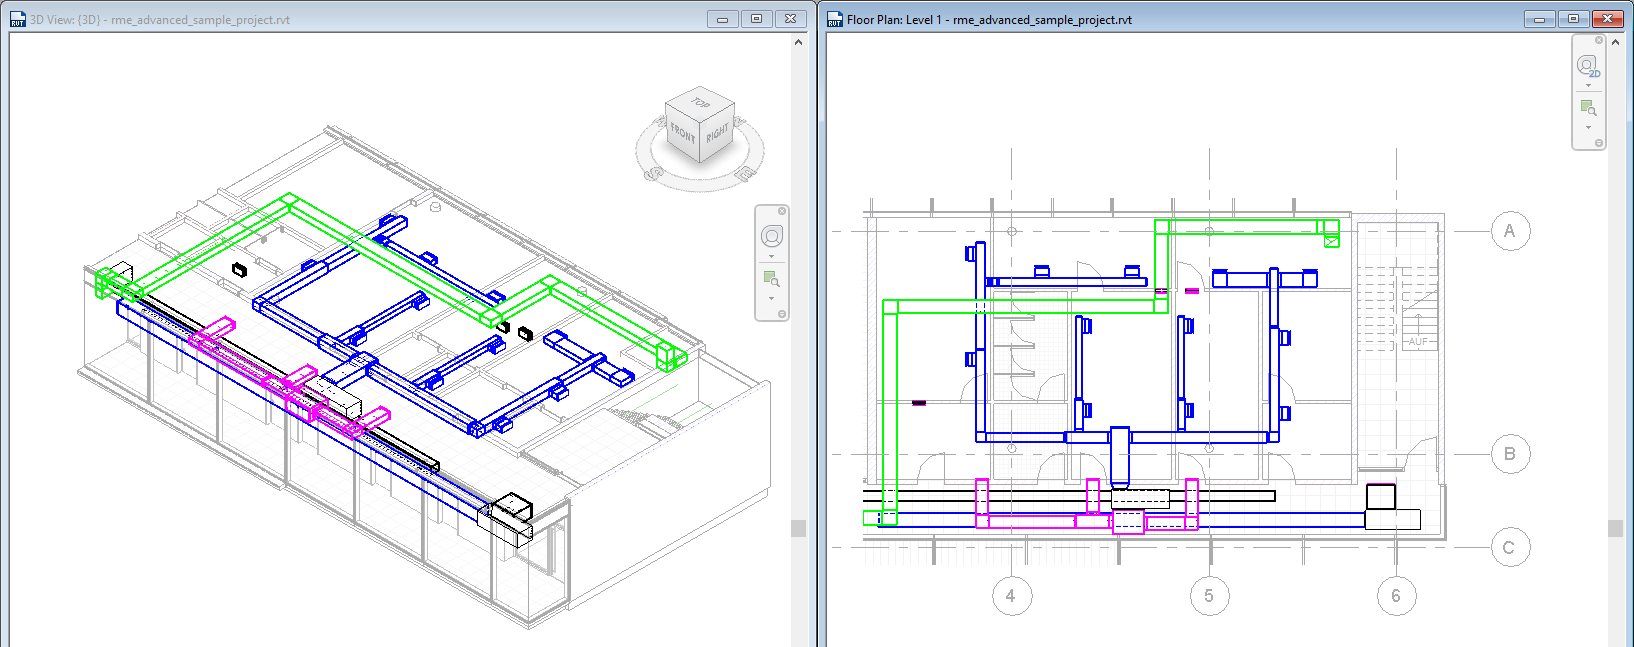 Control Revit's System Graphic Overrides easily